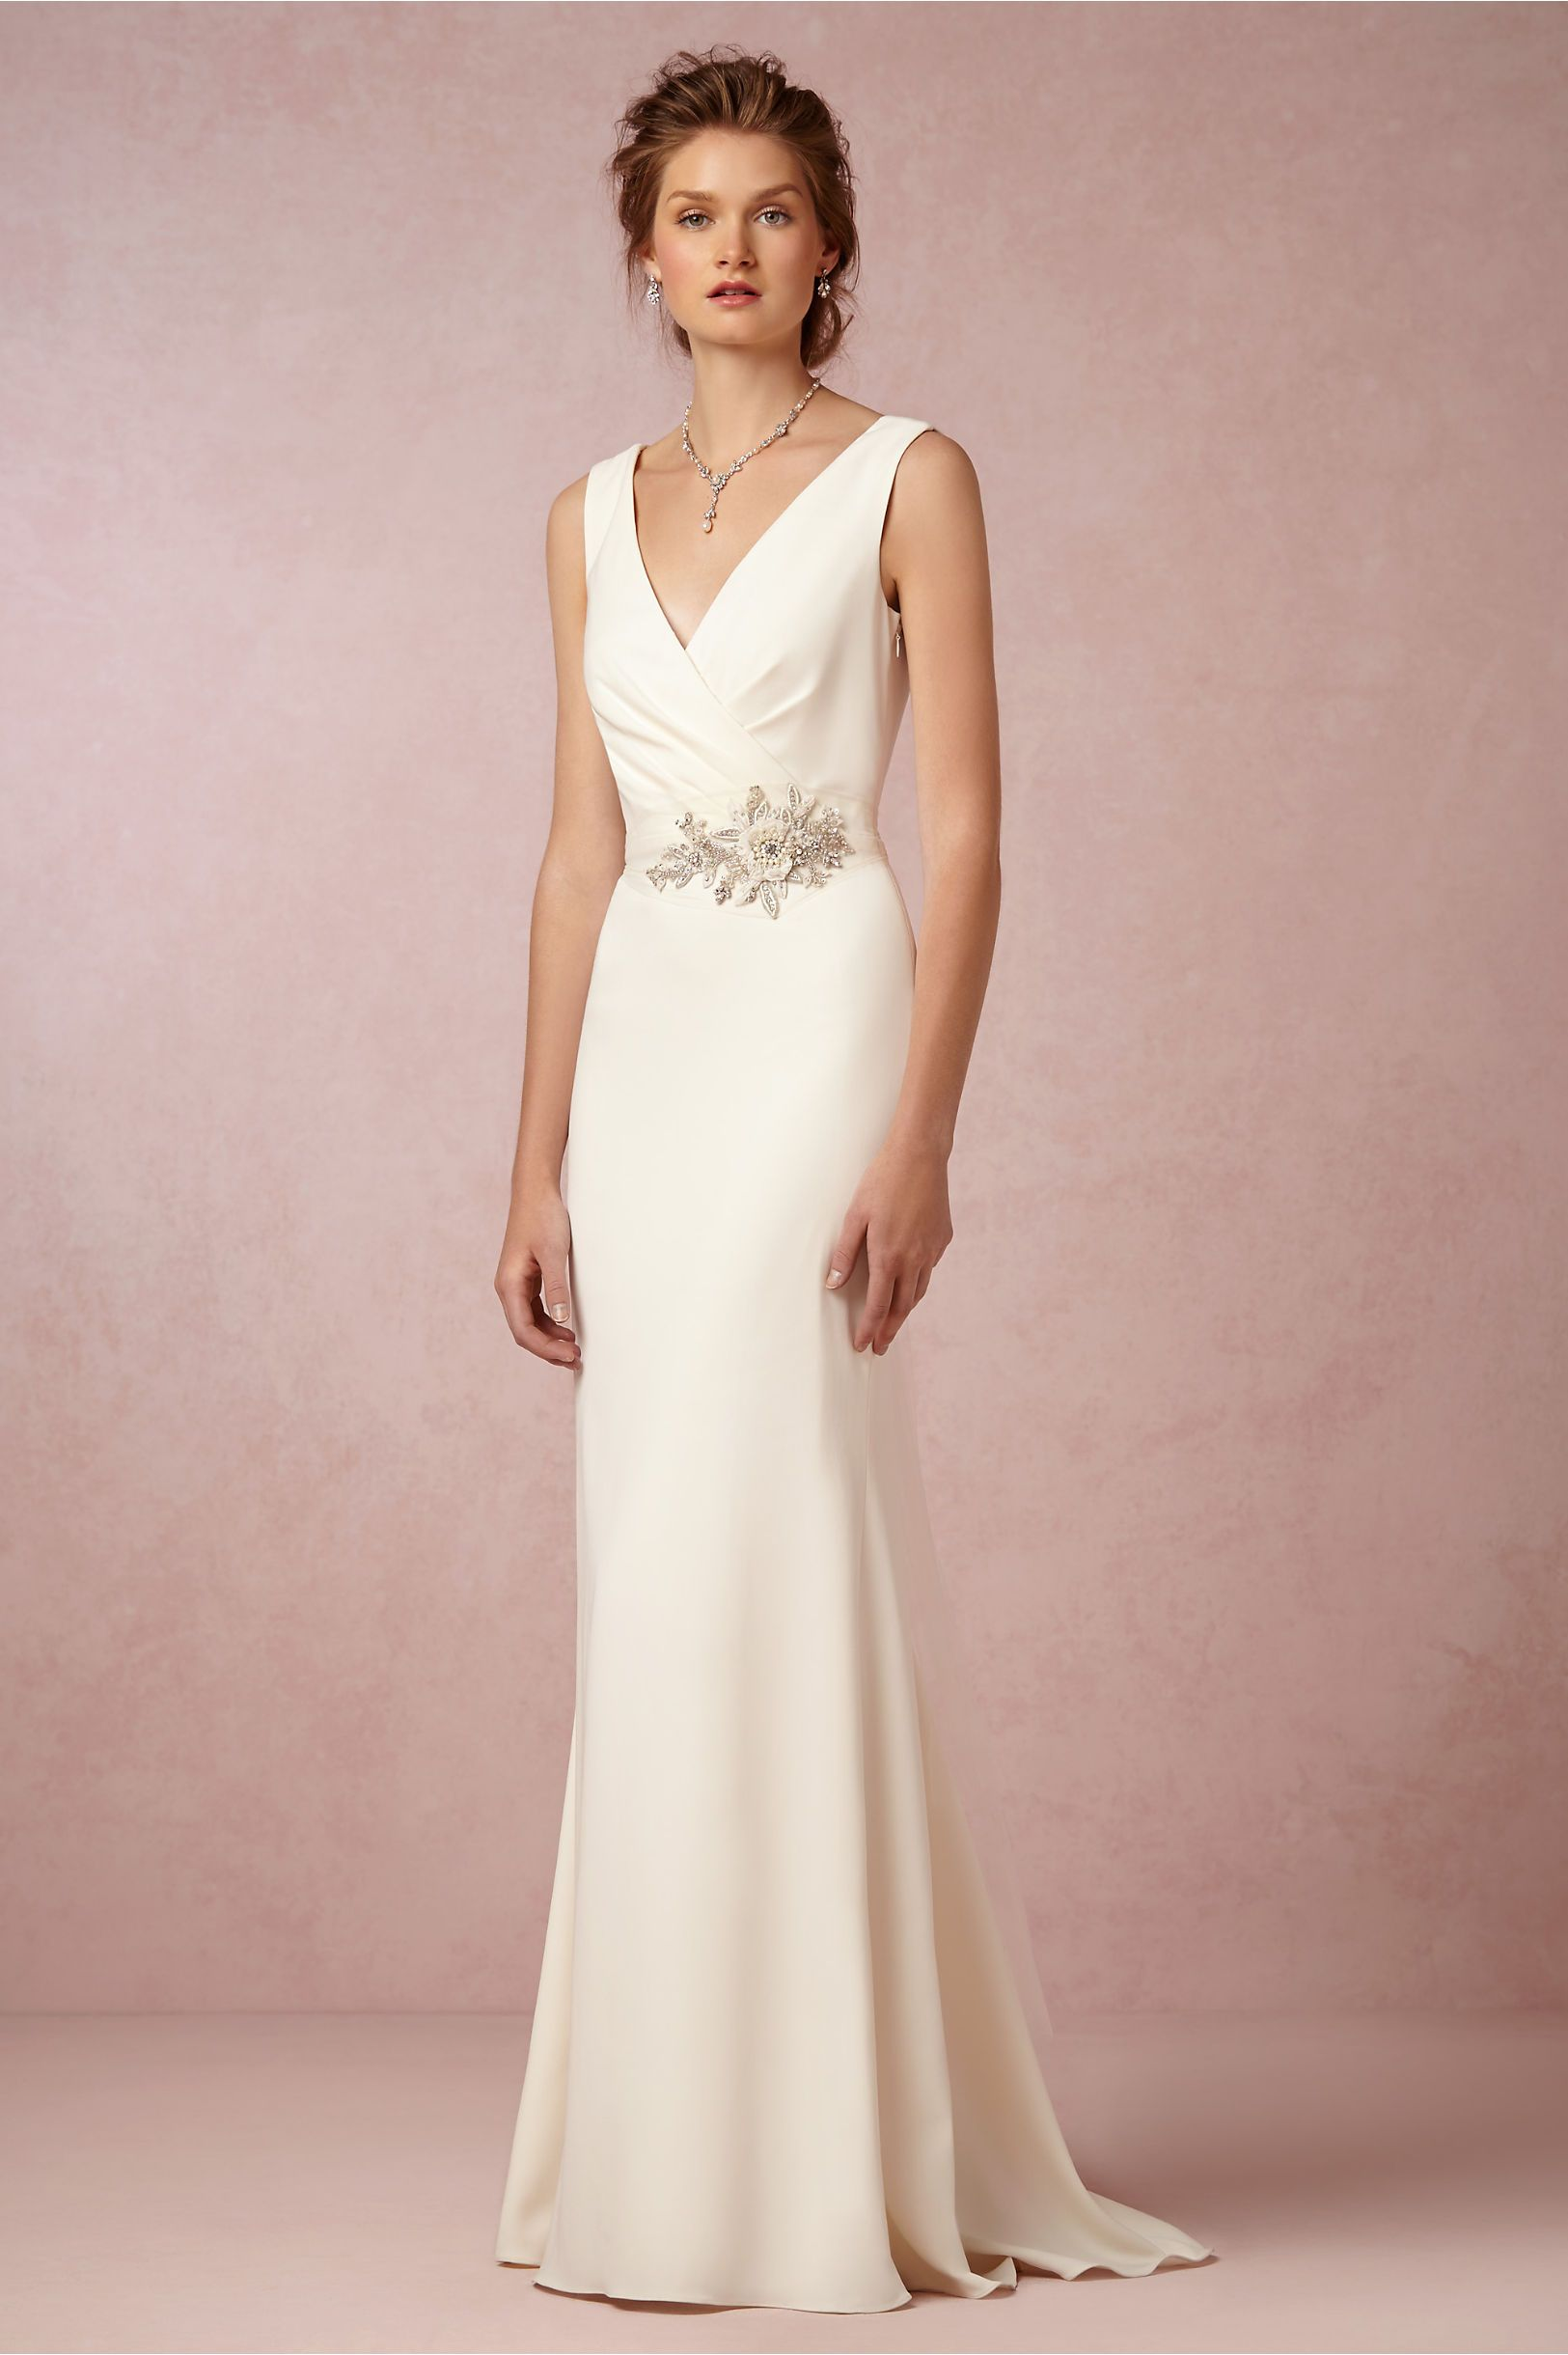 Livia Gown in Bride Wedding Dresses at BHLDN | vestidos de novia ...